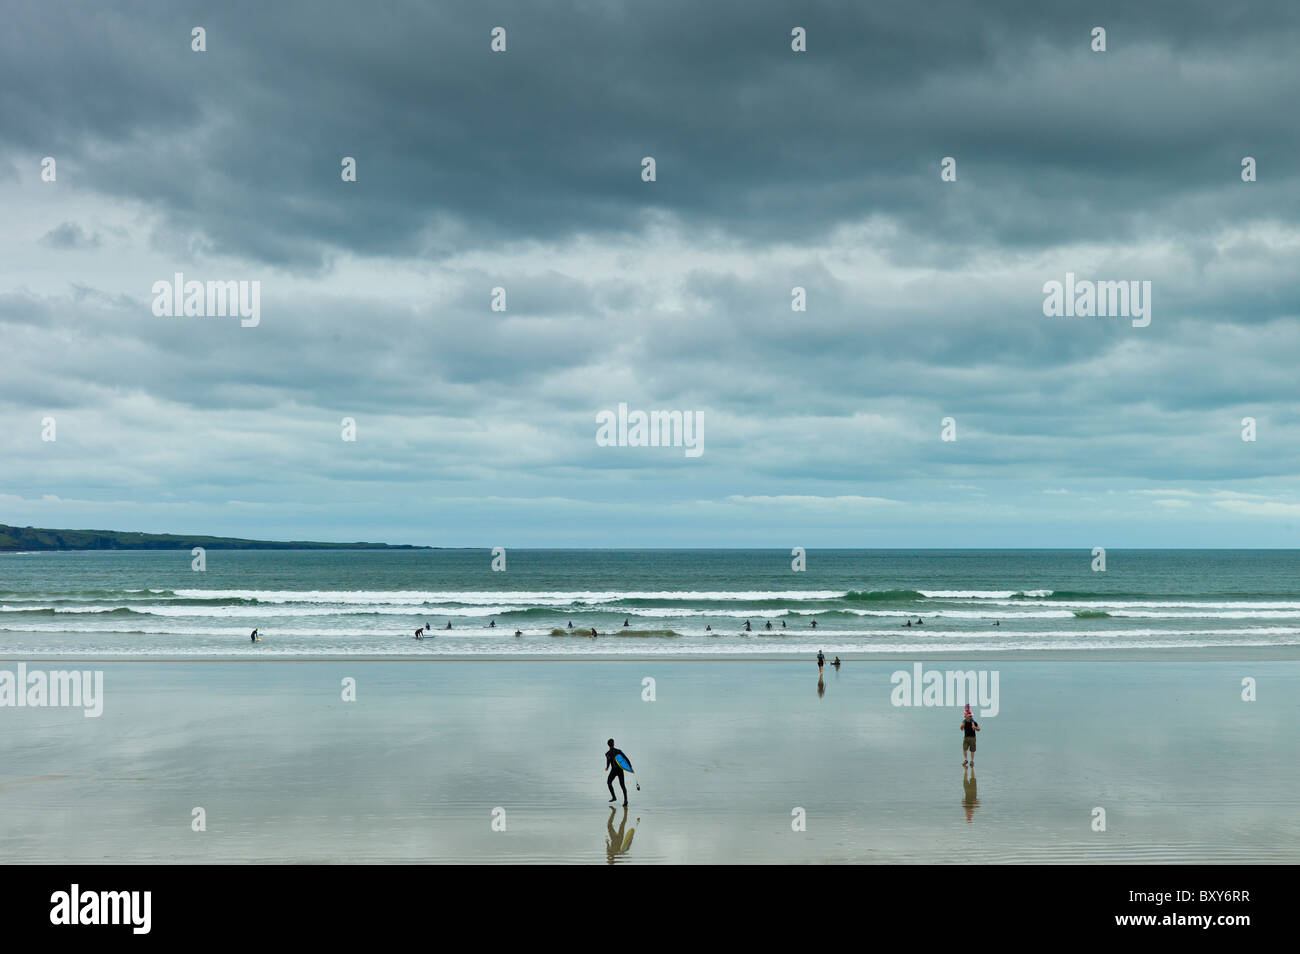 Waves, tide and surfers with surfboards at Lahinch - Lehinch - beach, County Clare, Ireland - Stock Image